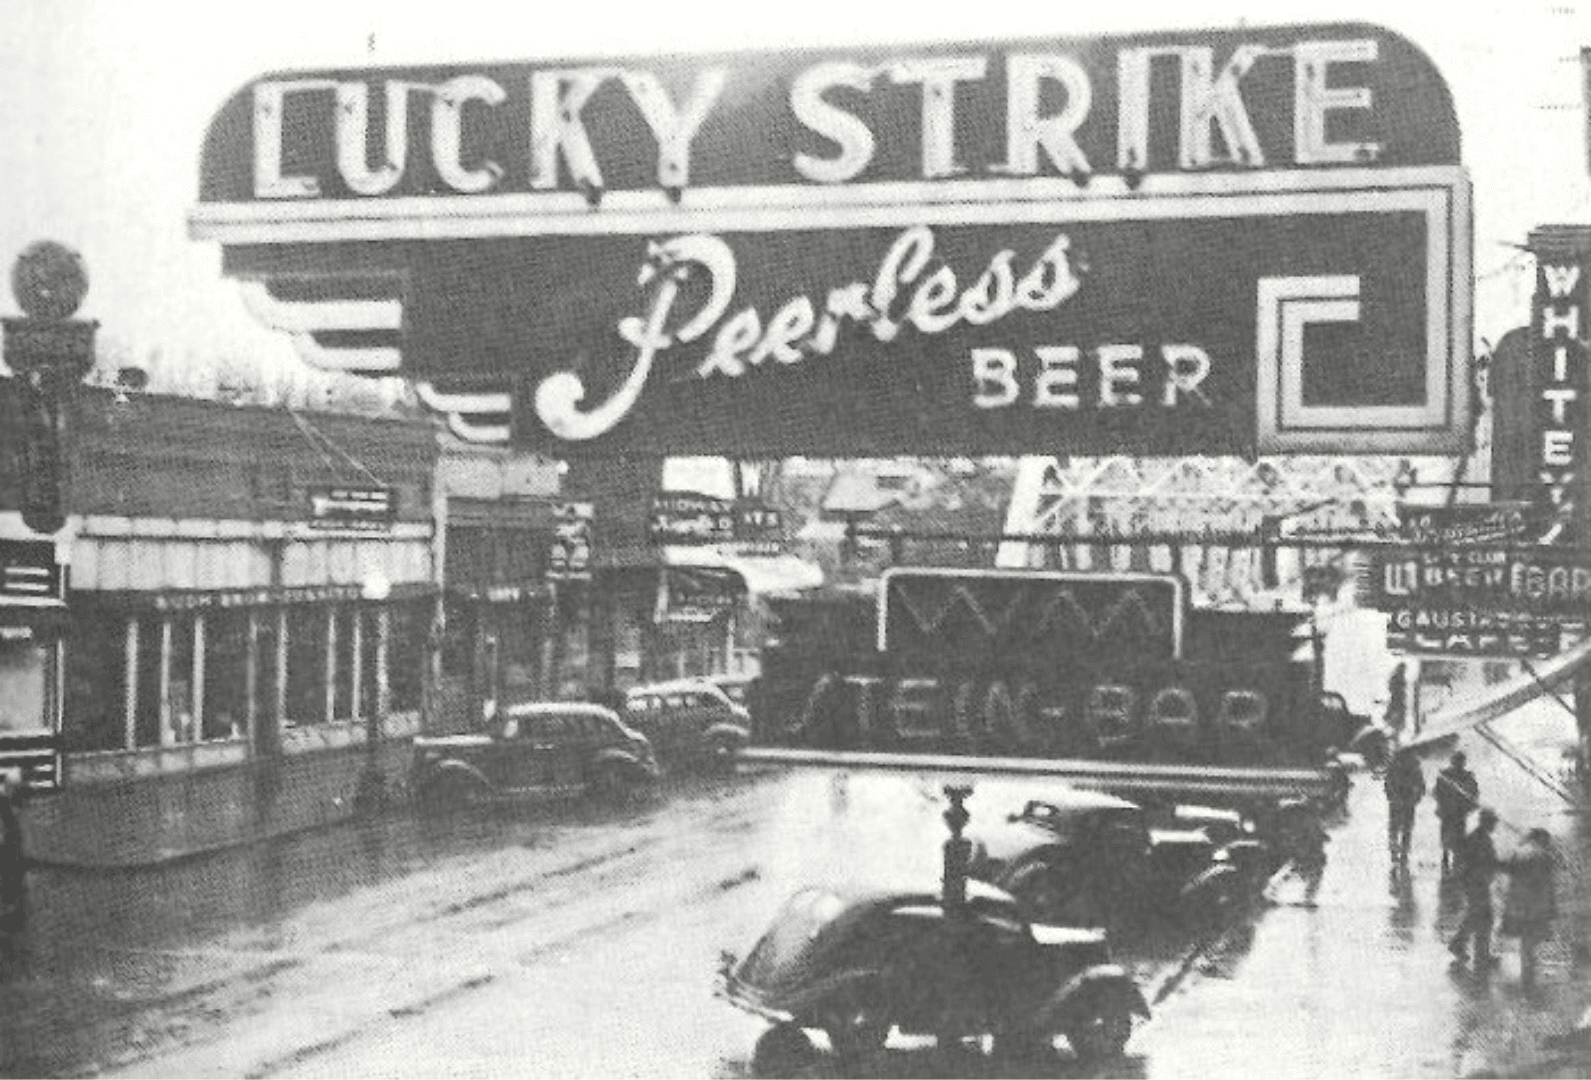 Demers Ave circa 1938 featuring neon signs for Luck Strike Peerless Beer, Wonderbar, and W M Stiens